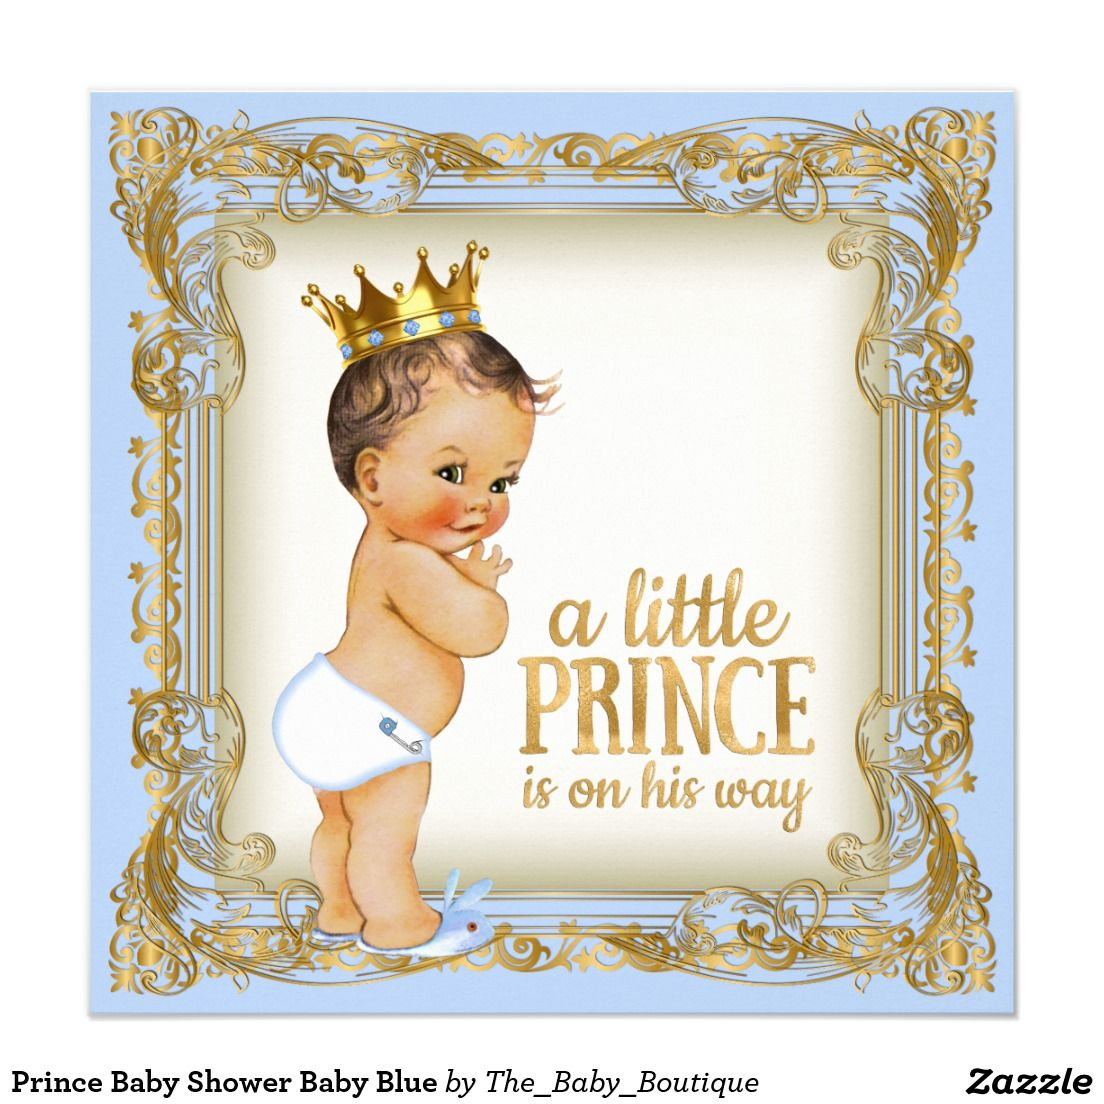 Prince Baby Shower Baby Blue Card | Baby blue, Babies and Baby ...